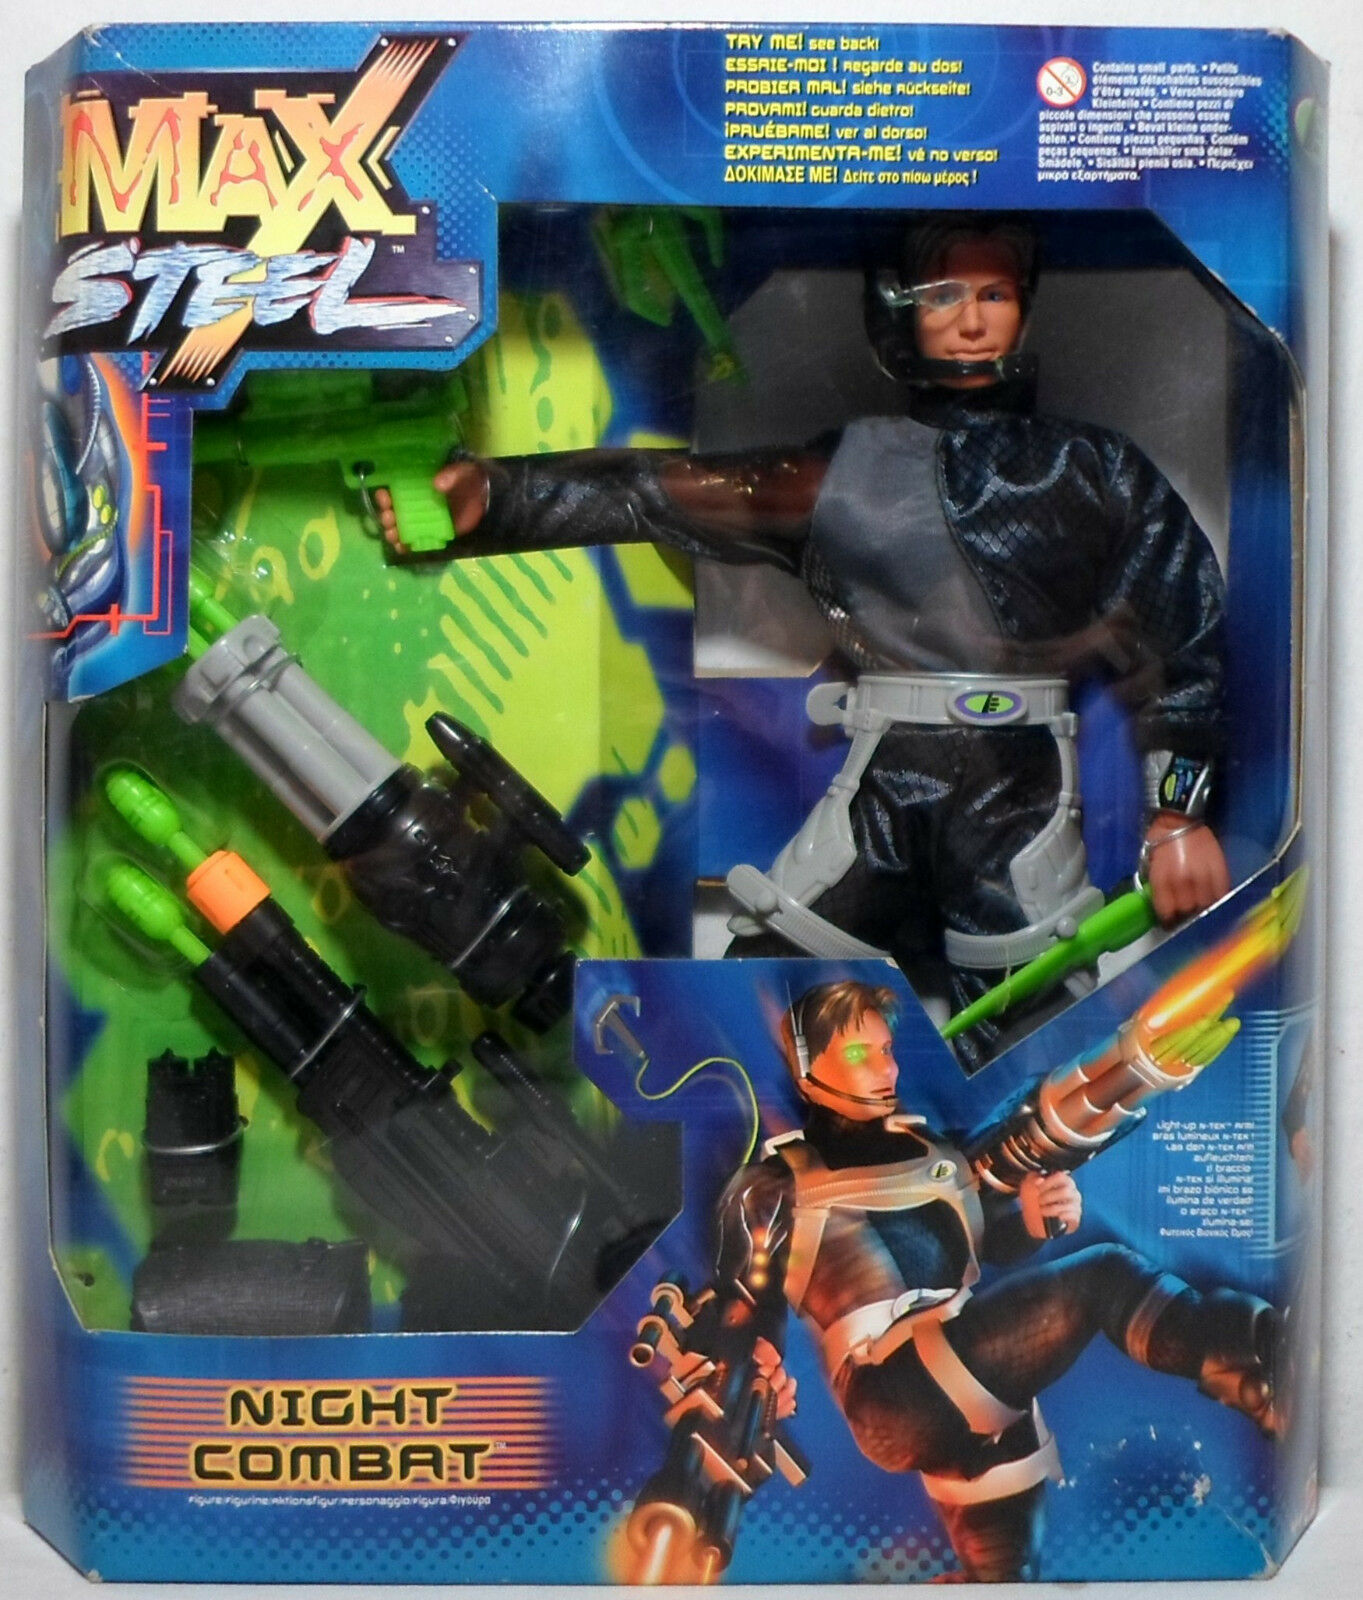 MATTEL MAX STEEL 1999 NIGHT COMBAT 12'' ACTION FIGURE MISP EUROPEAN NEW SEALED